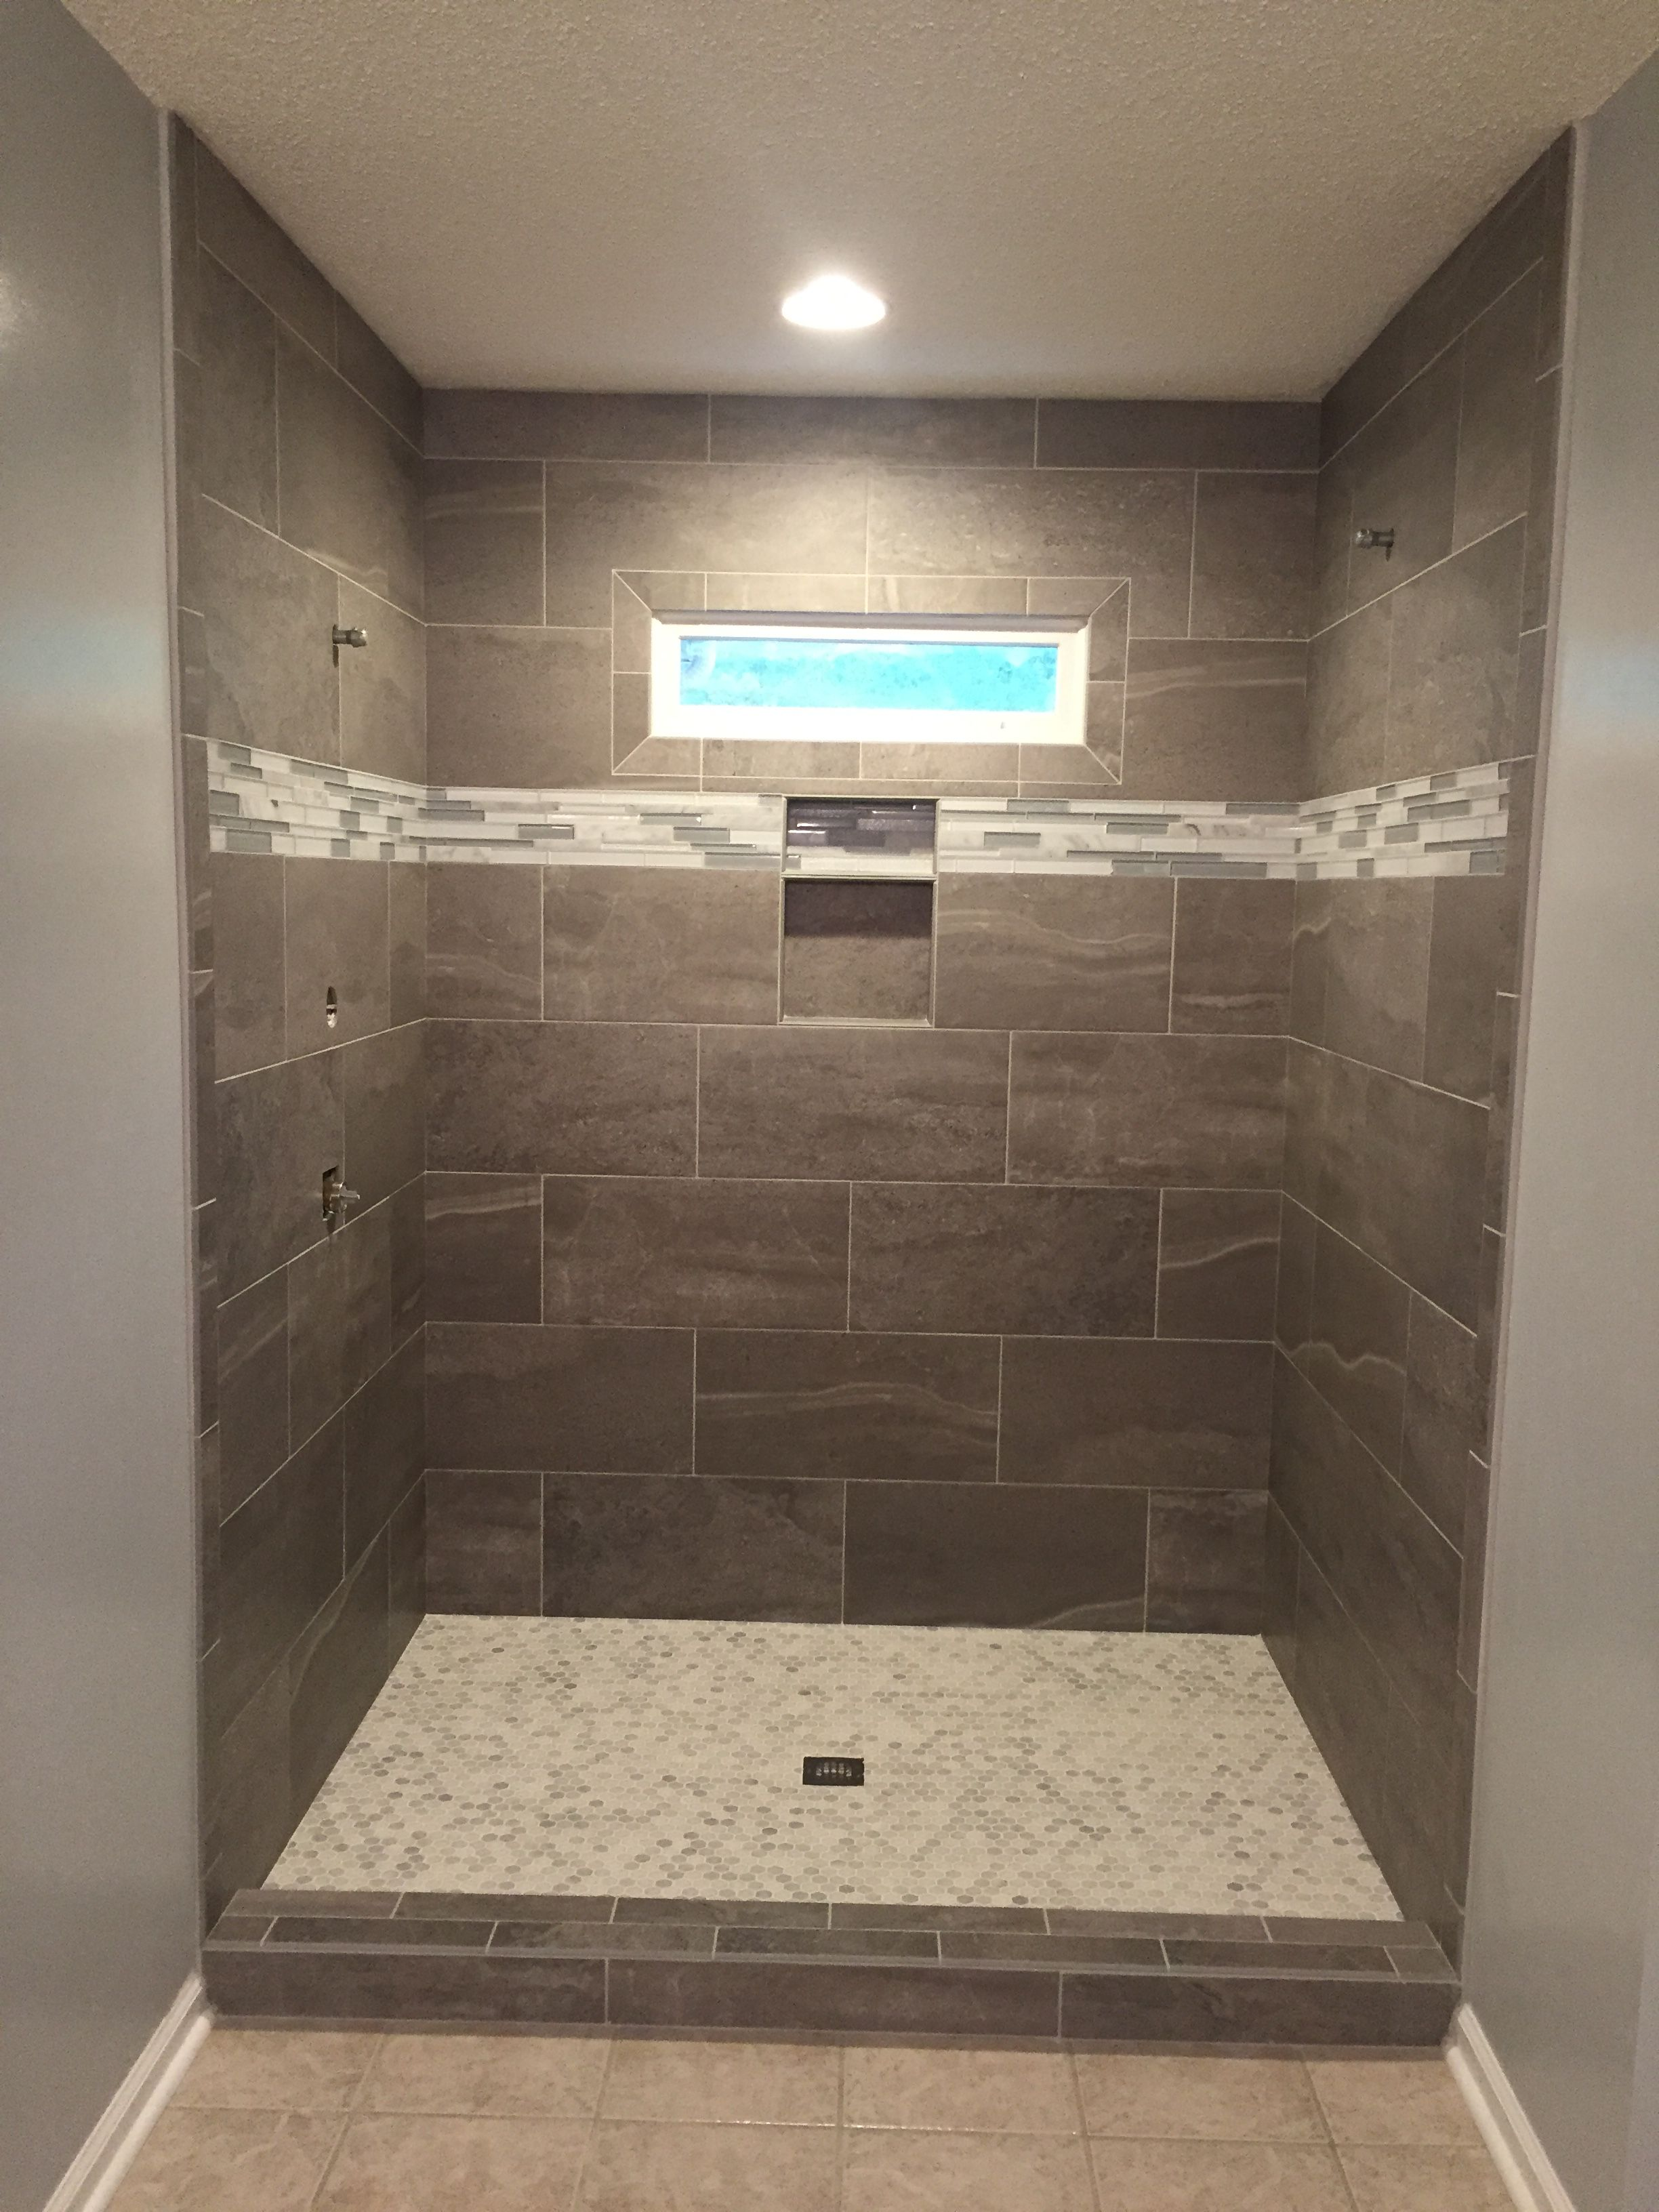 Skyros gray tile with glass accent strip and Carrara ...